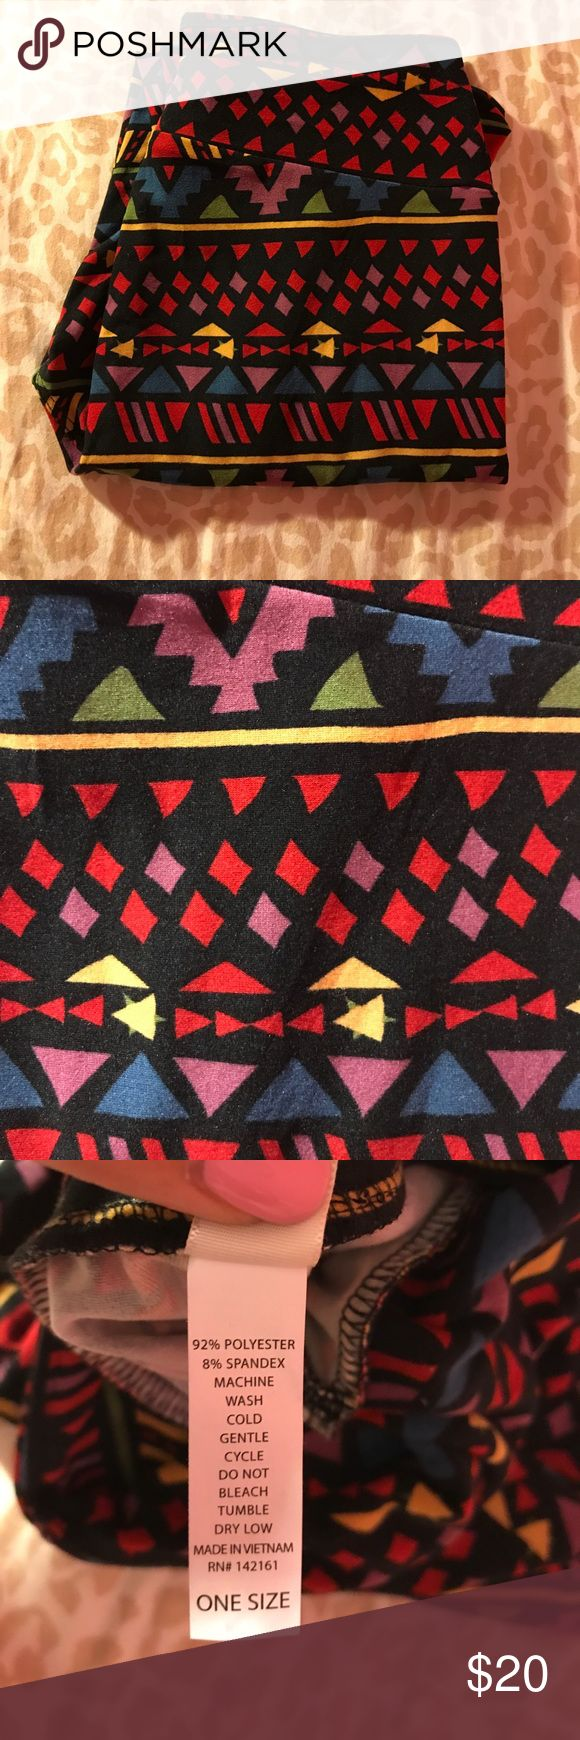 New LuLaRoe Tribal Print Leggings Brand new never worn school supply leggings. LuLaRoe doesn't put tags on their leggings. They are black with red, blue, purple, and green details.  I am offering the for $20 to make up for shipping cost. LuLaRoe Pants Leggings